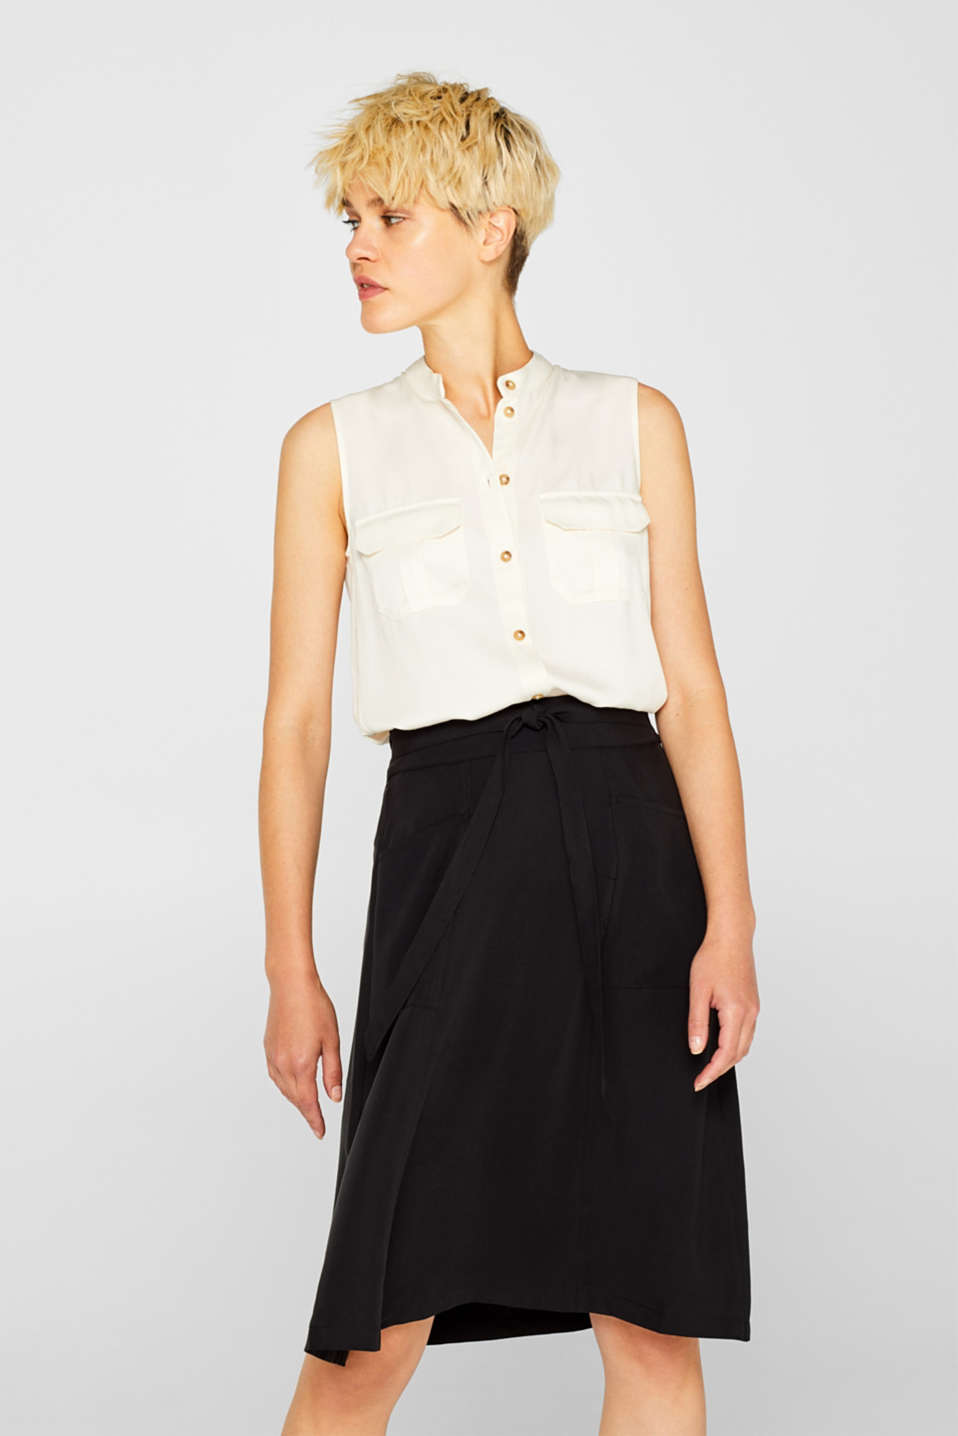 Esprit - A-line skirt with pockets, 100% lyocell